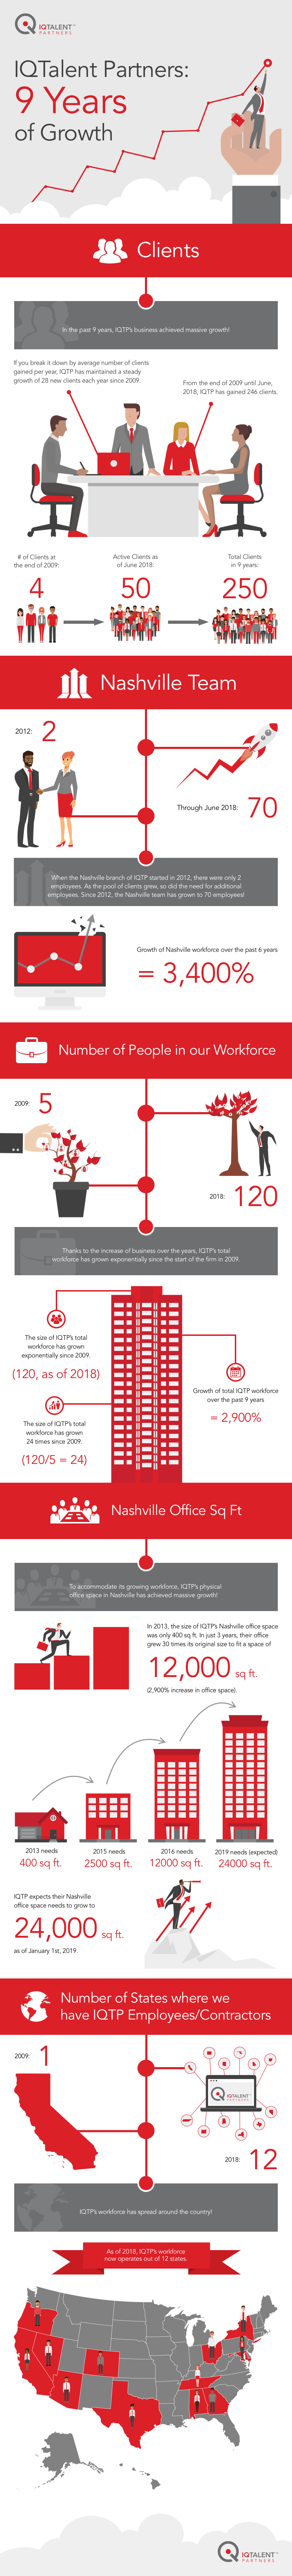 IQTalent Partners growth infographic